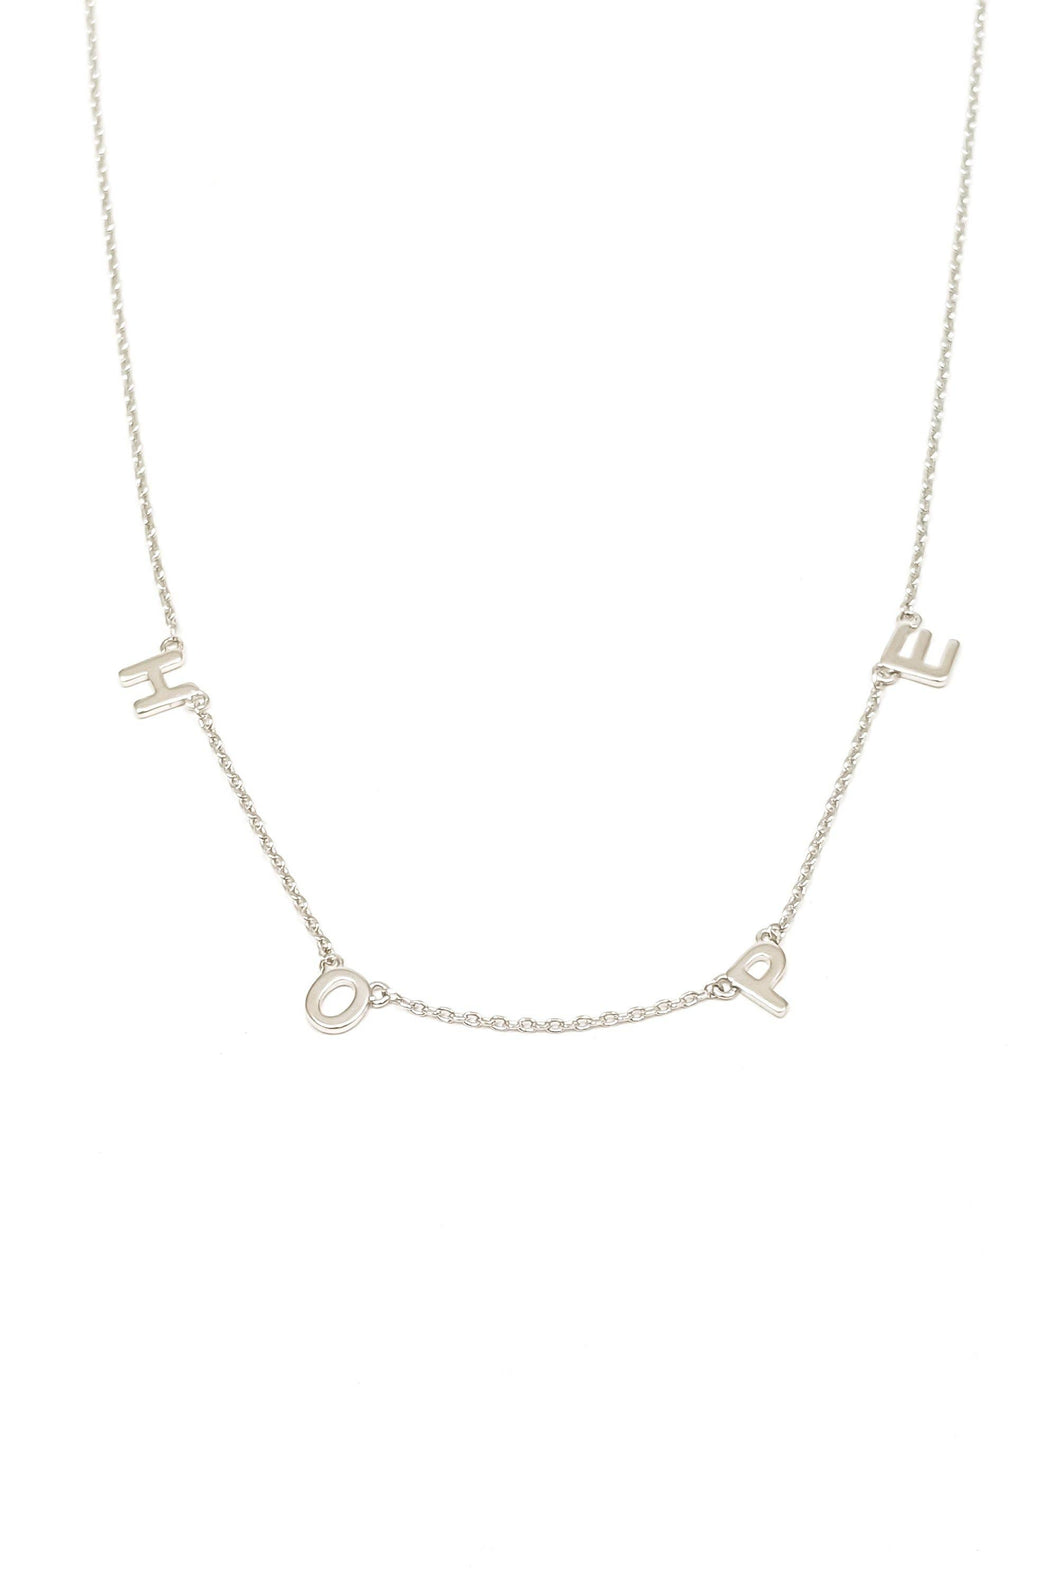 HOPE Word Necklace - SILVER